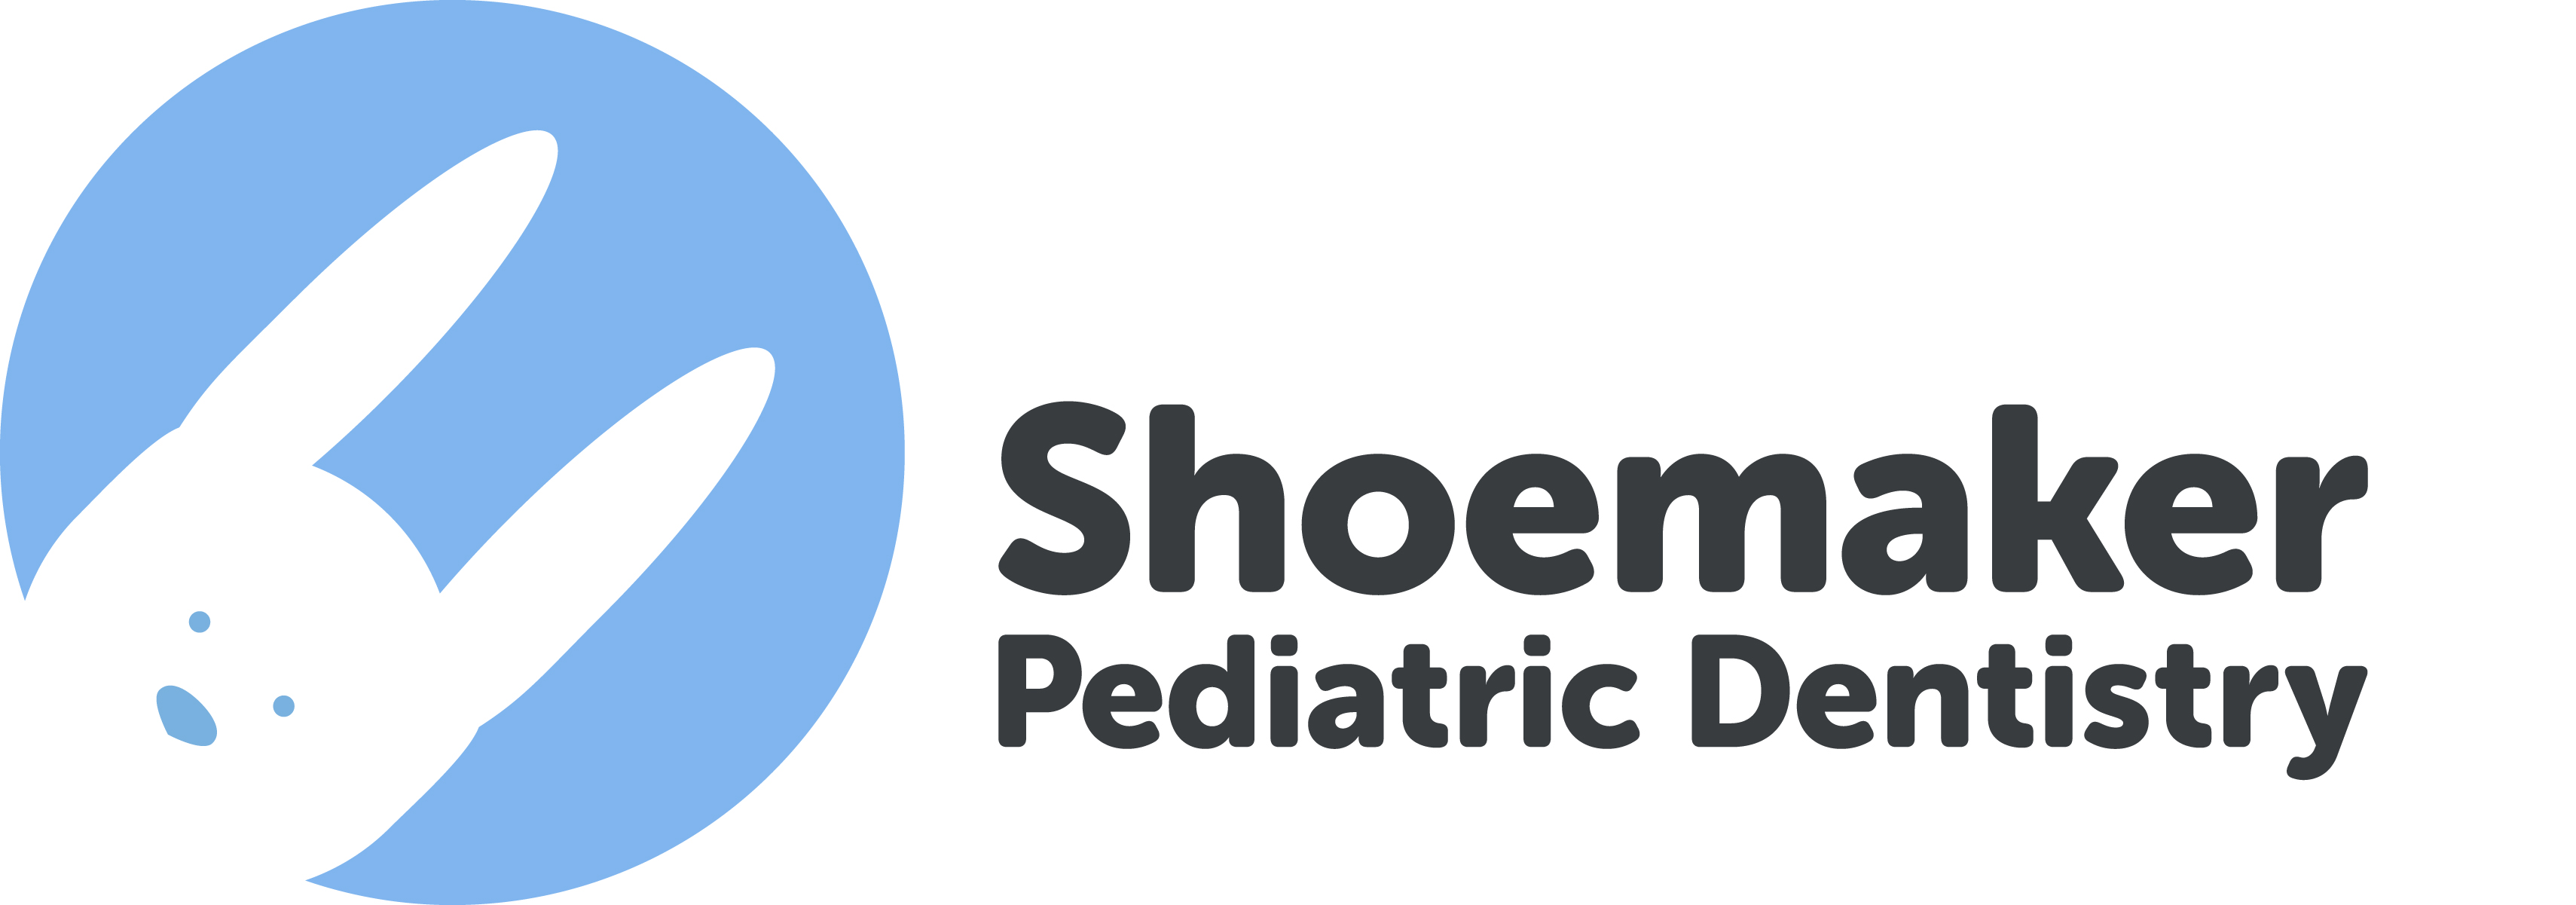 Shoemaker Pediatric Dentistry reviews | Pediatric Dentists at 3745 Cherokee St NW - Kennesaw GA